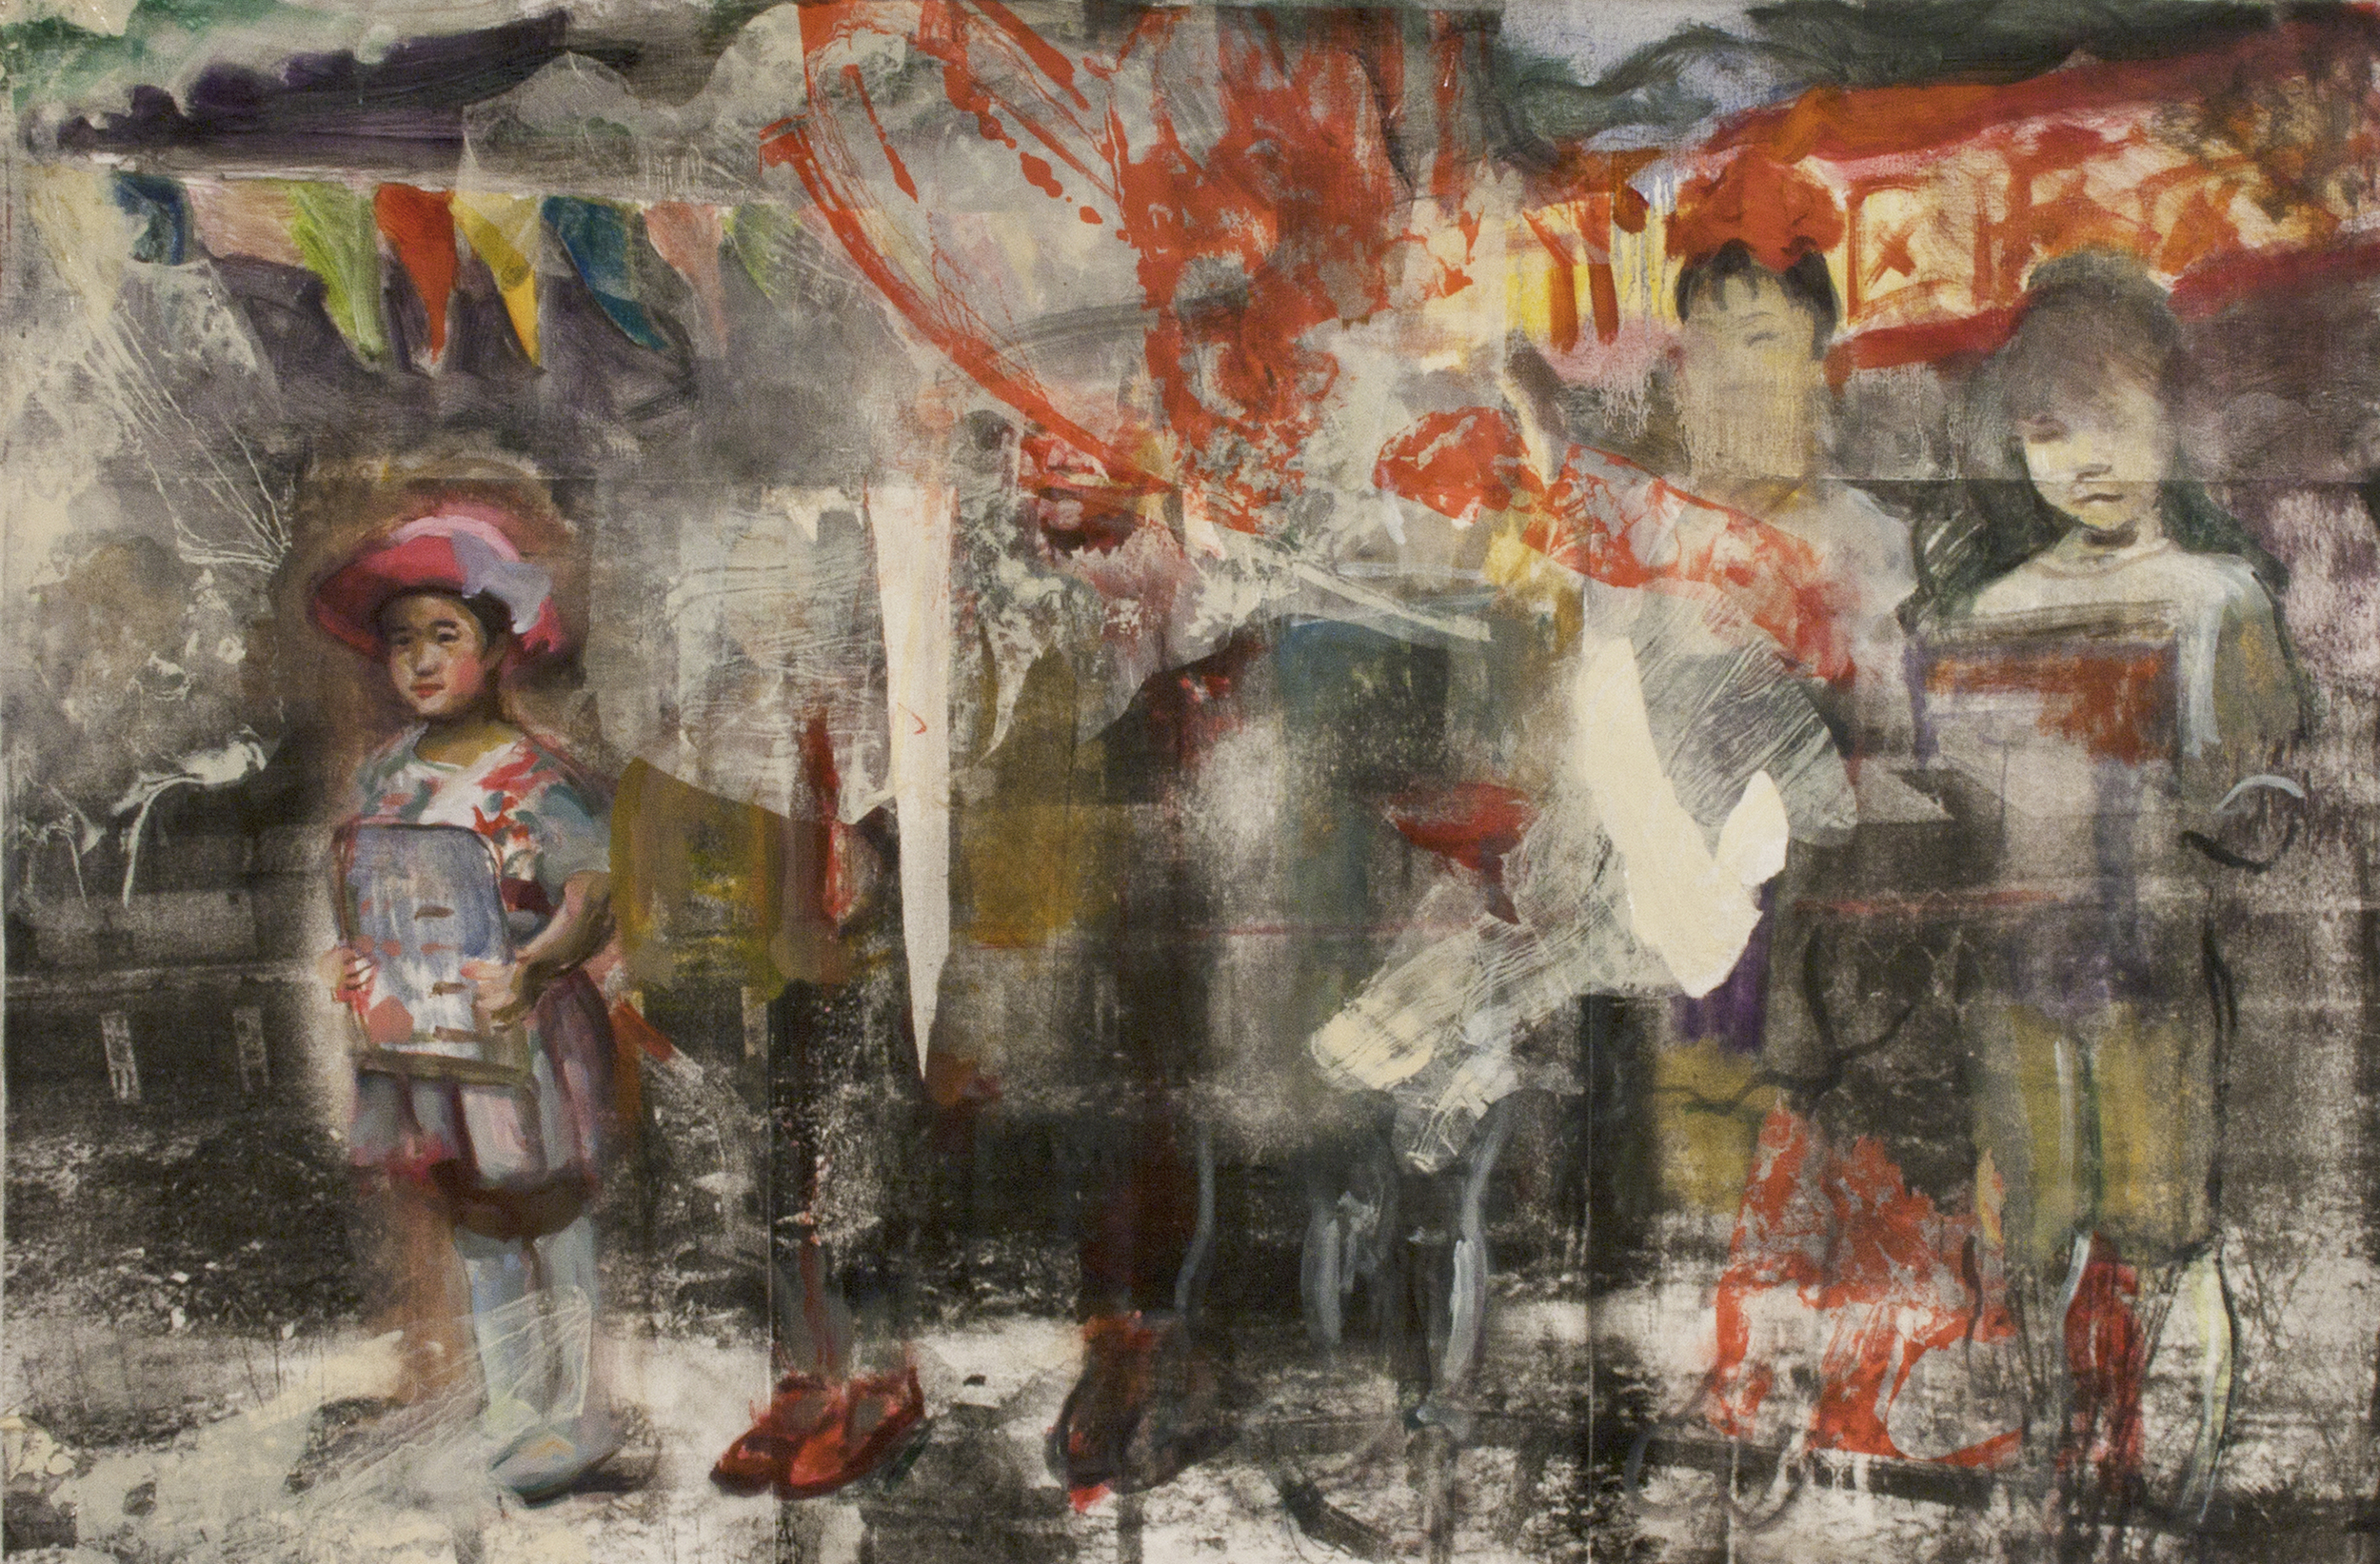 Prize , Oil and silkscreen collage on linen, 38x49 inches, 2013